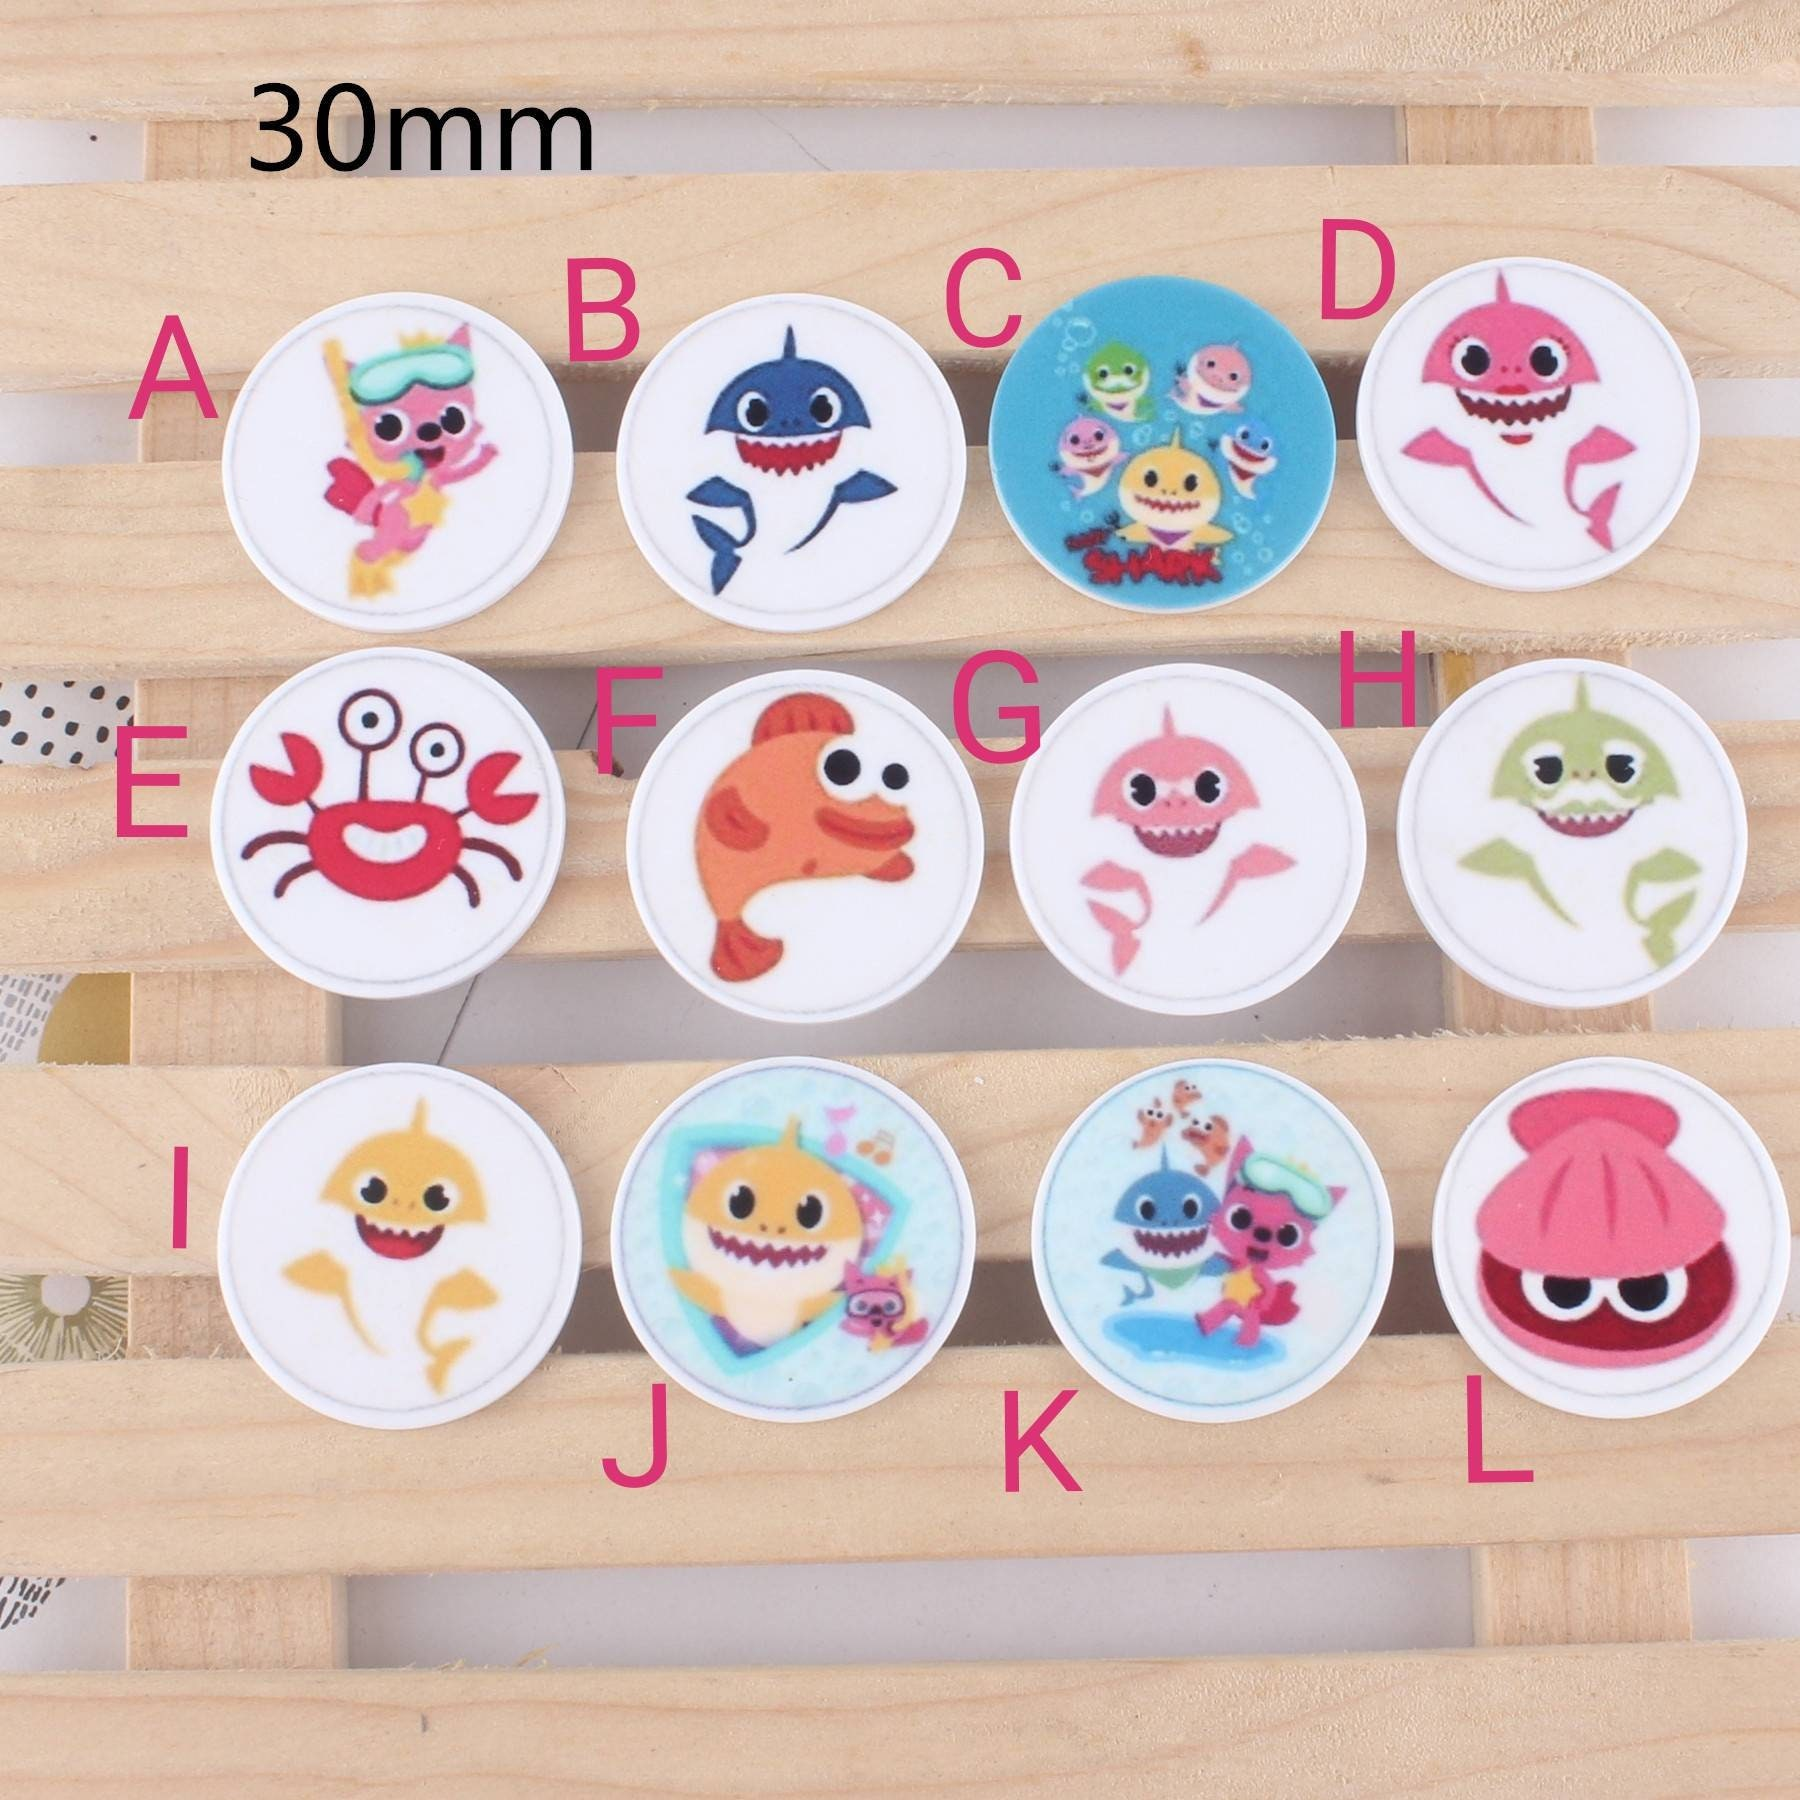 Planar Resin Cabochon Flatback Hair Bow Pin Center Embellishment Cupcake Topper Resin Charms Jewelry Findings